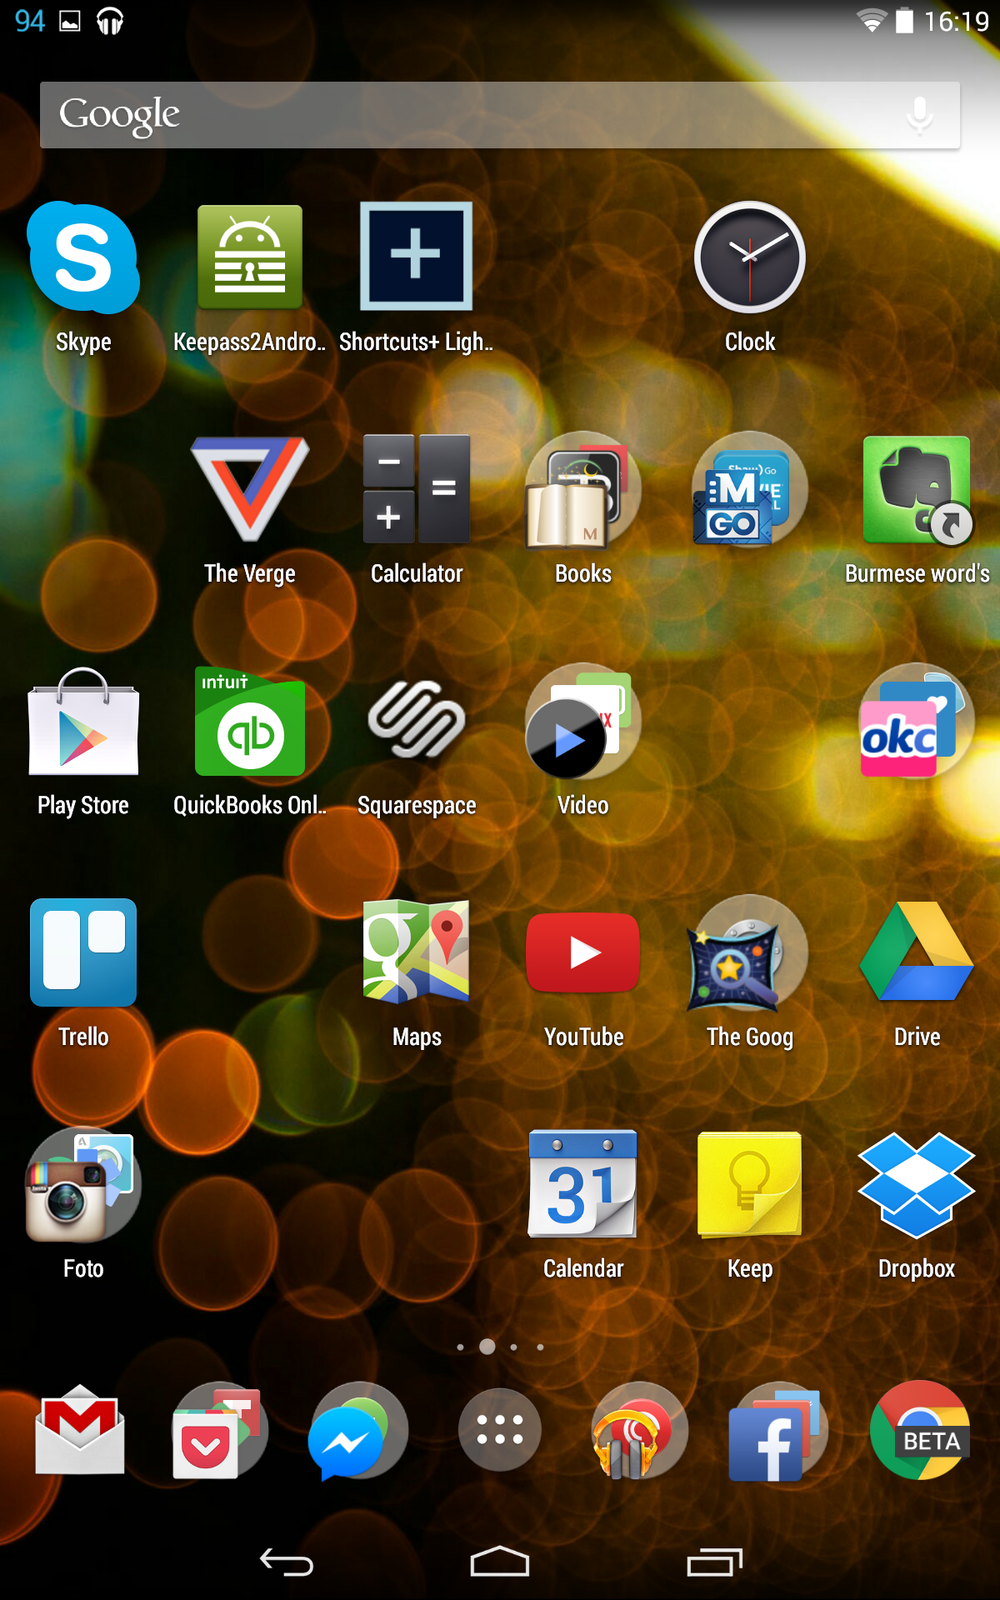 Screenshot_2014-08-27-16-19-03.png